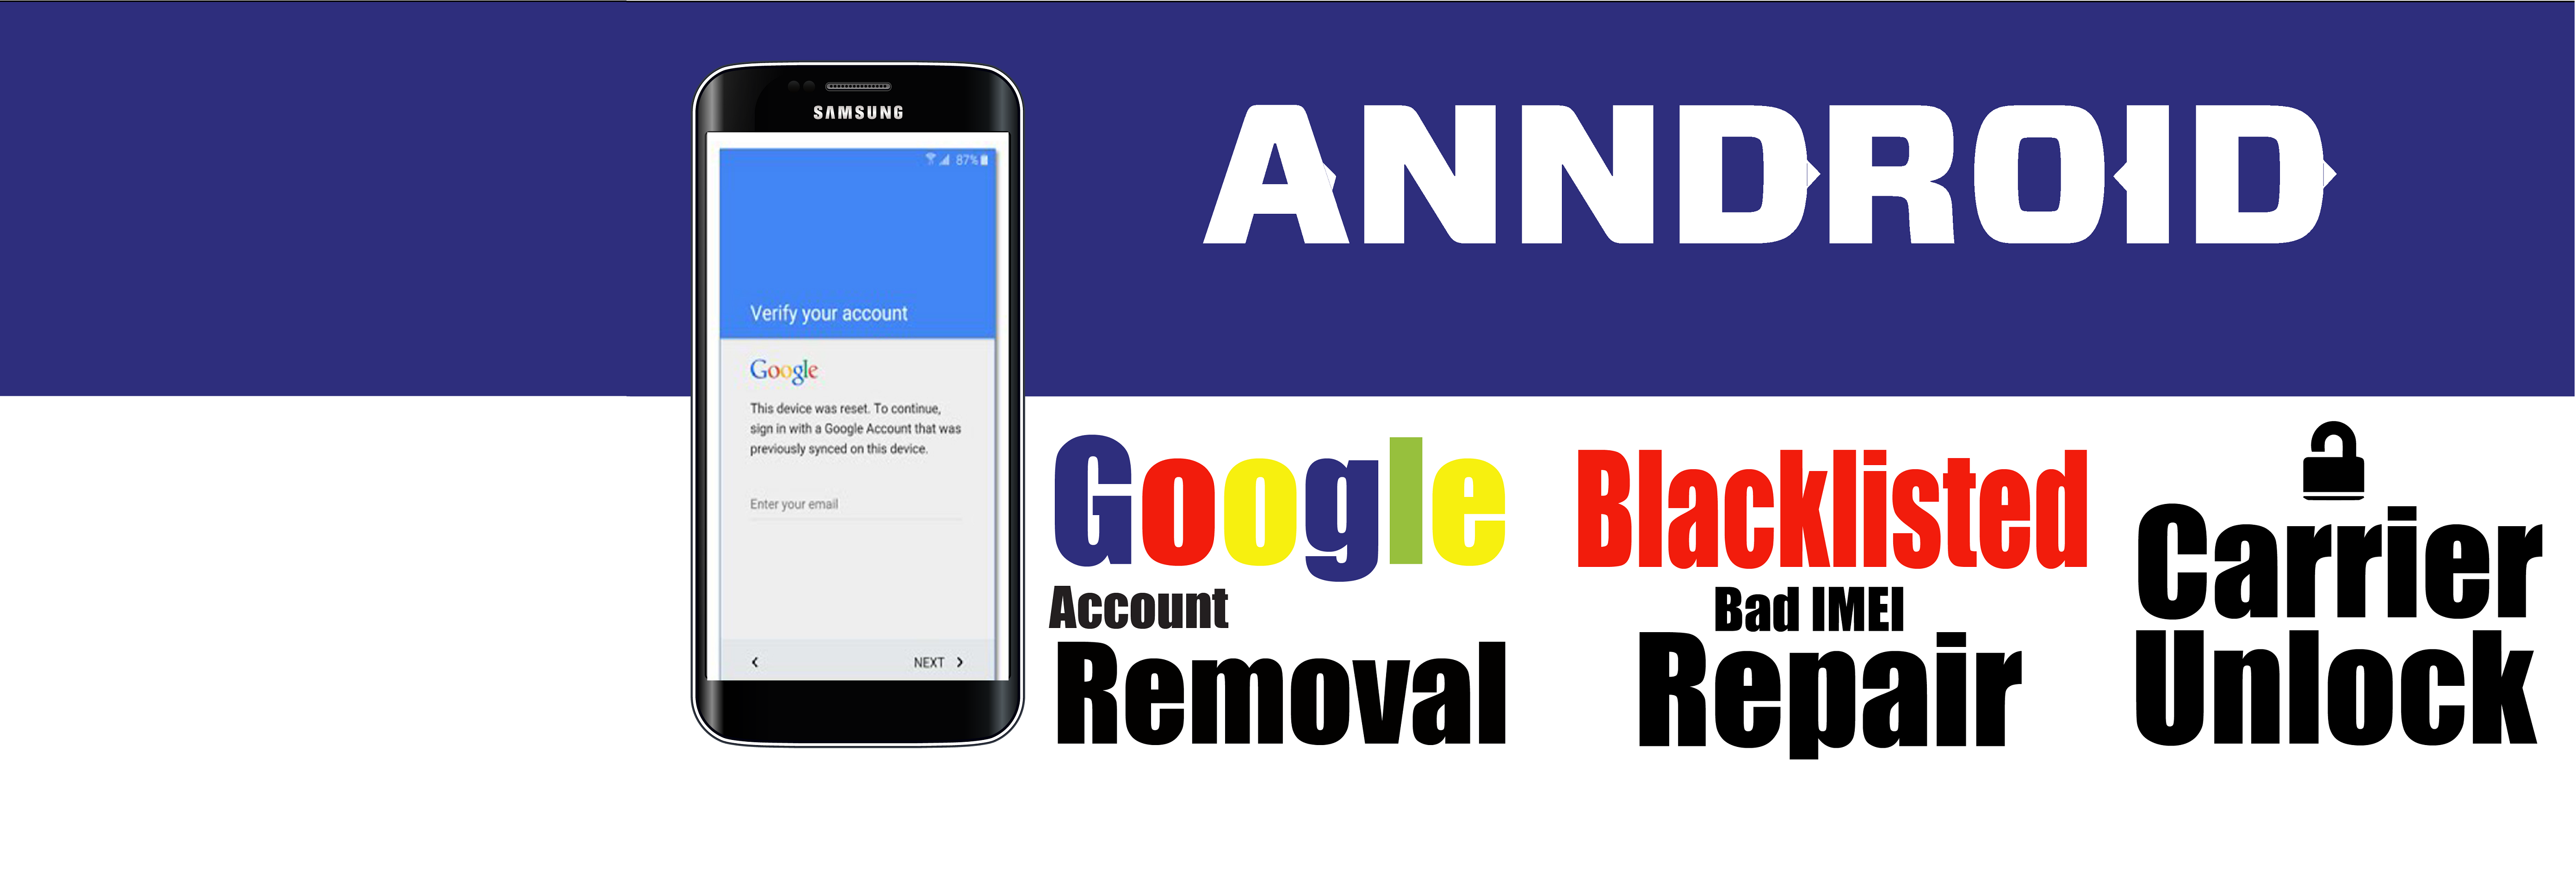 looking for remove google account from android? We provide